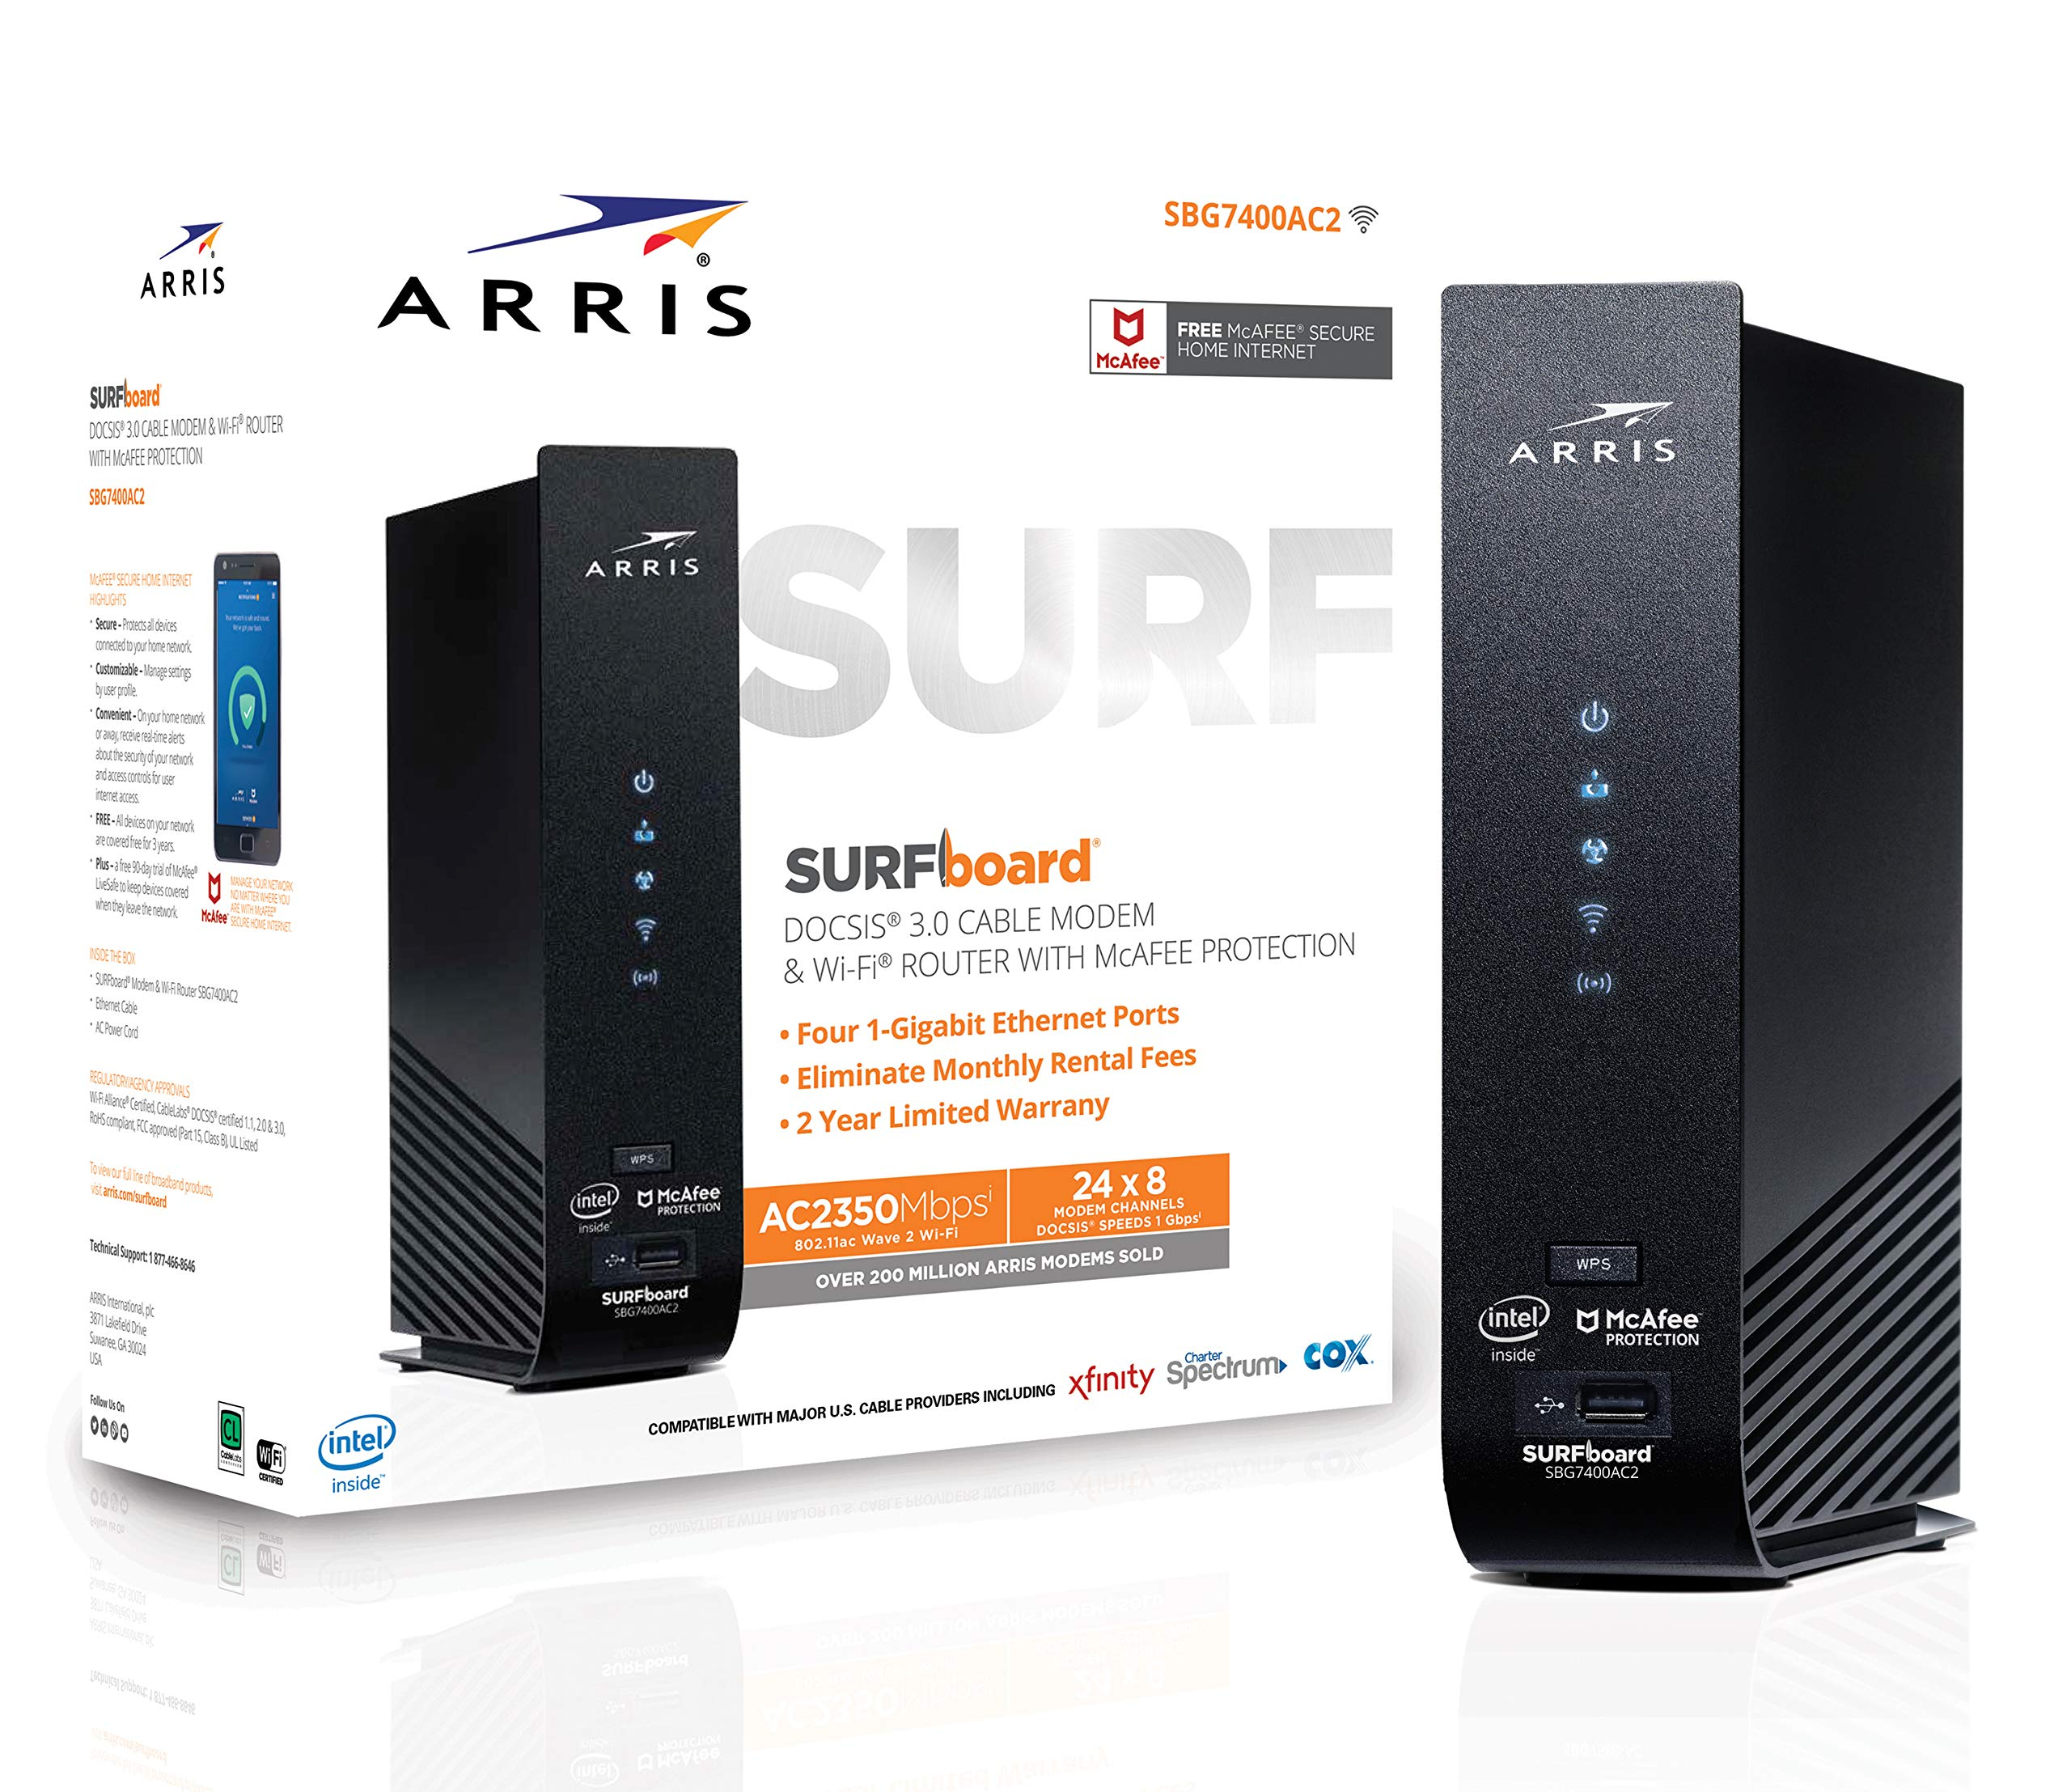 ARRIS SURFboard (24x8) DOCSIS 3.0 Cable Modem Plus AC2350 Dual Band Wi-Fi Router, approved for Cox, Spectrum, Xfinity & more (SBG7400AC2) by ARRIS